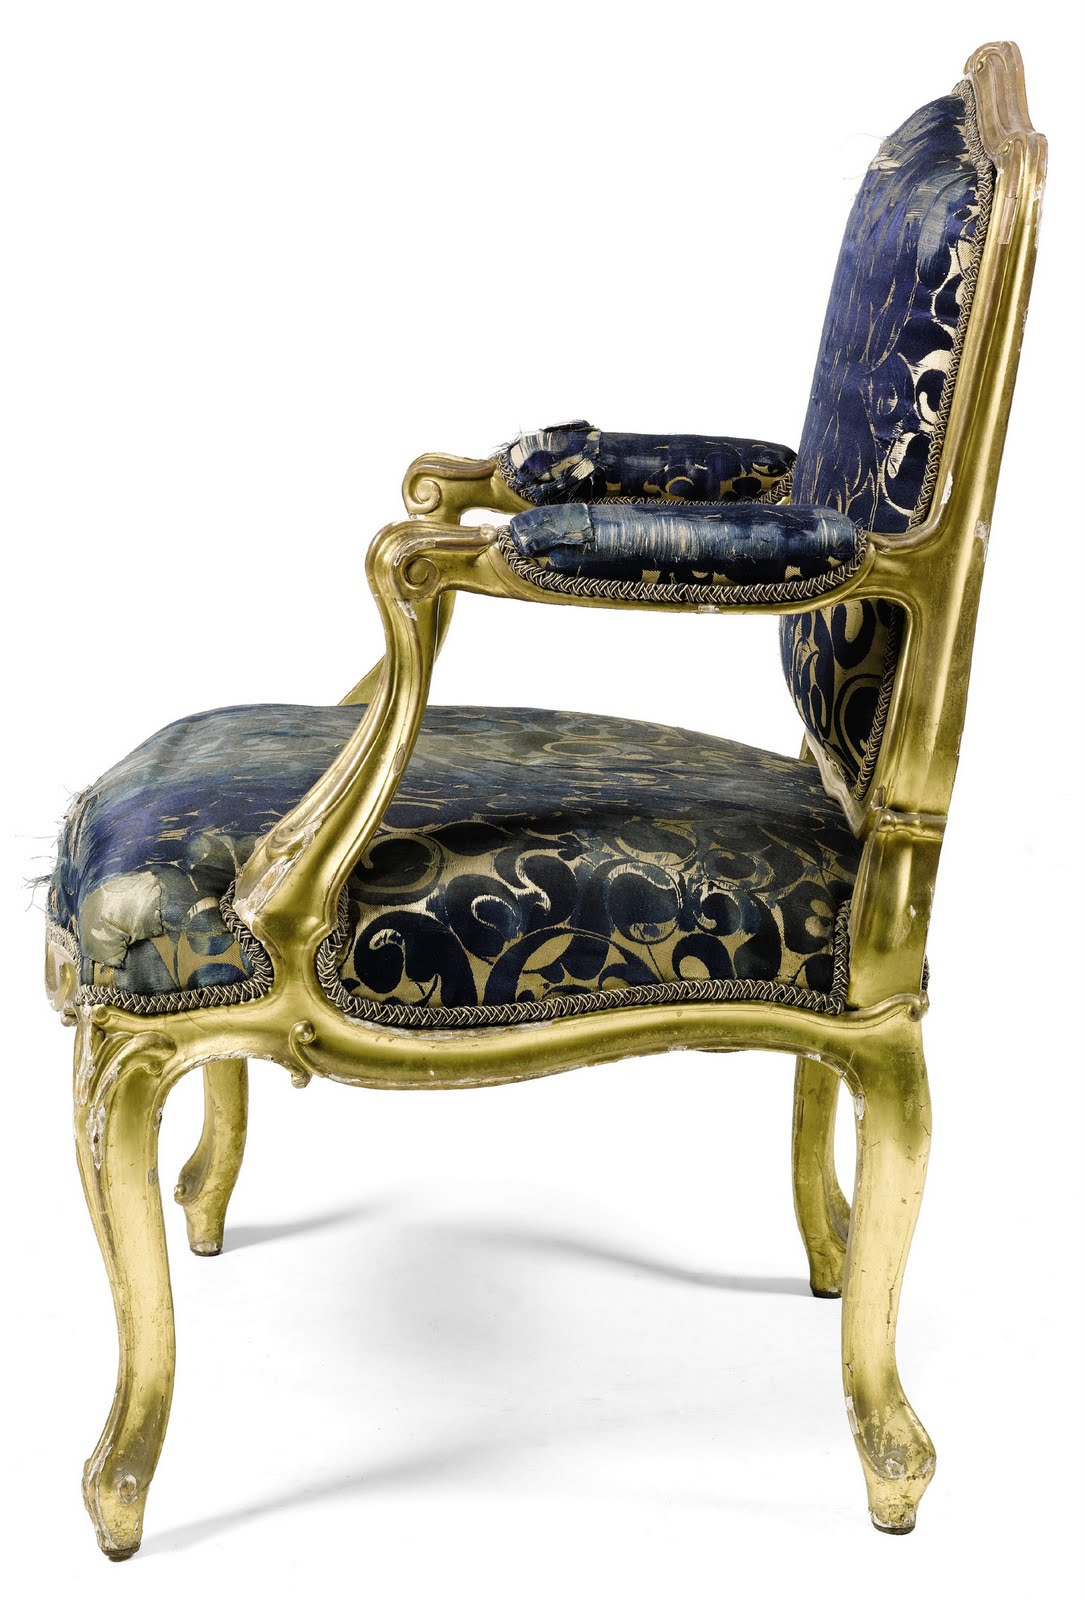 Louis xvi Frames and Chairs on Pinterest